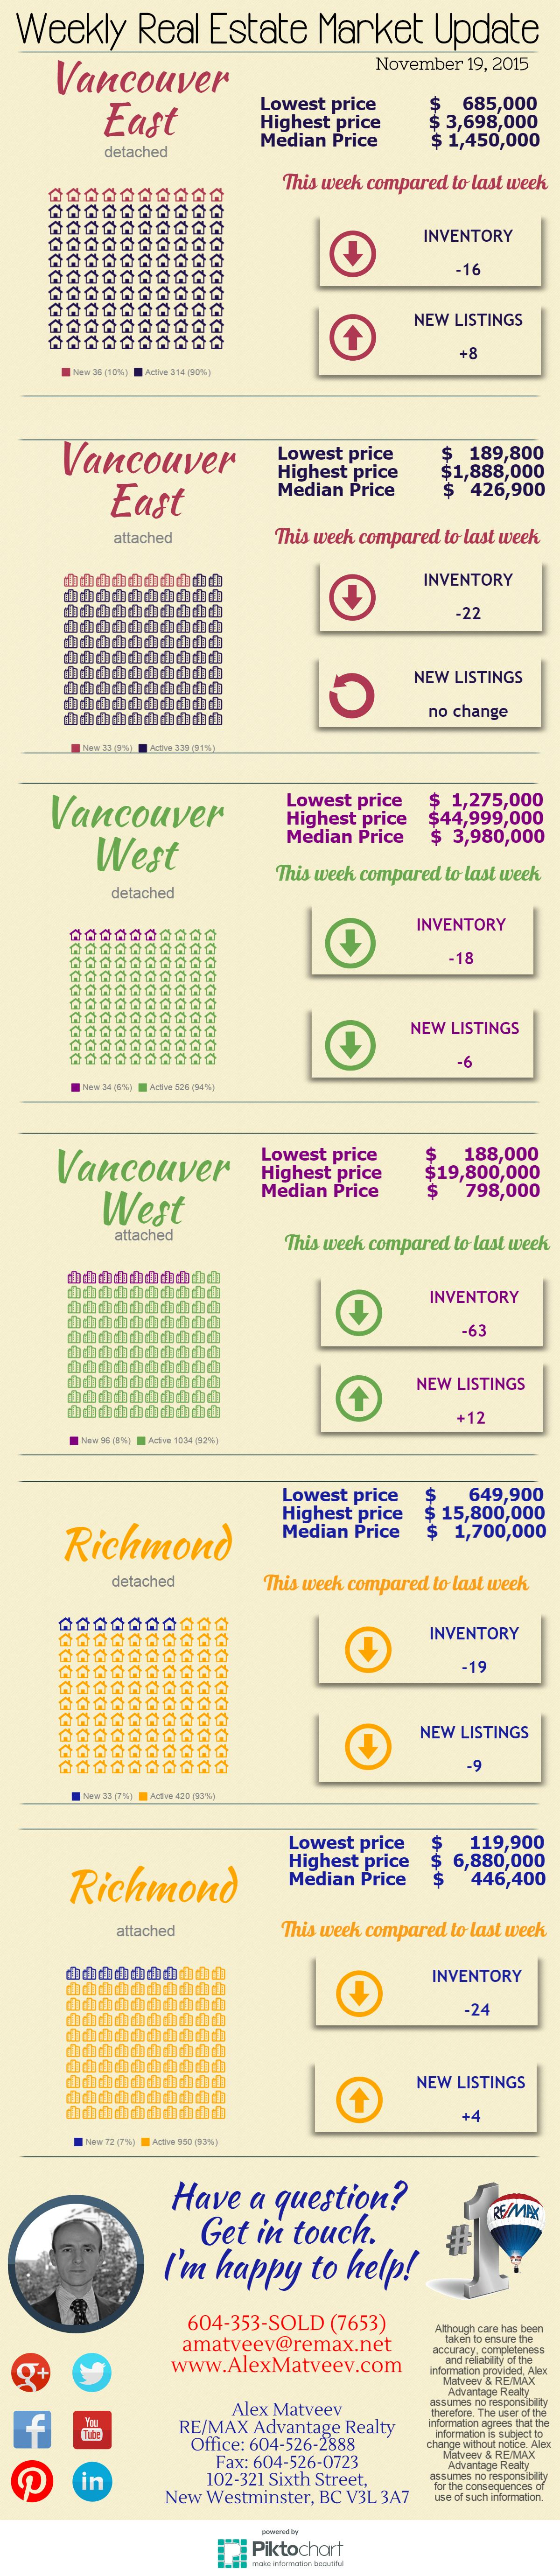 Vancouver East, Vancouver West and Richmond real estate market update: numbers of homes for sale and new listings; median listing prices and listing price ranges.